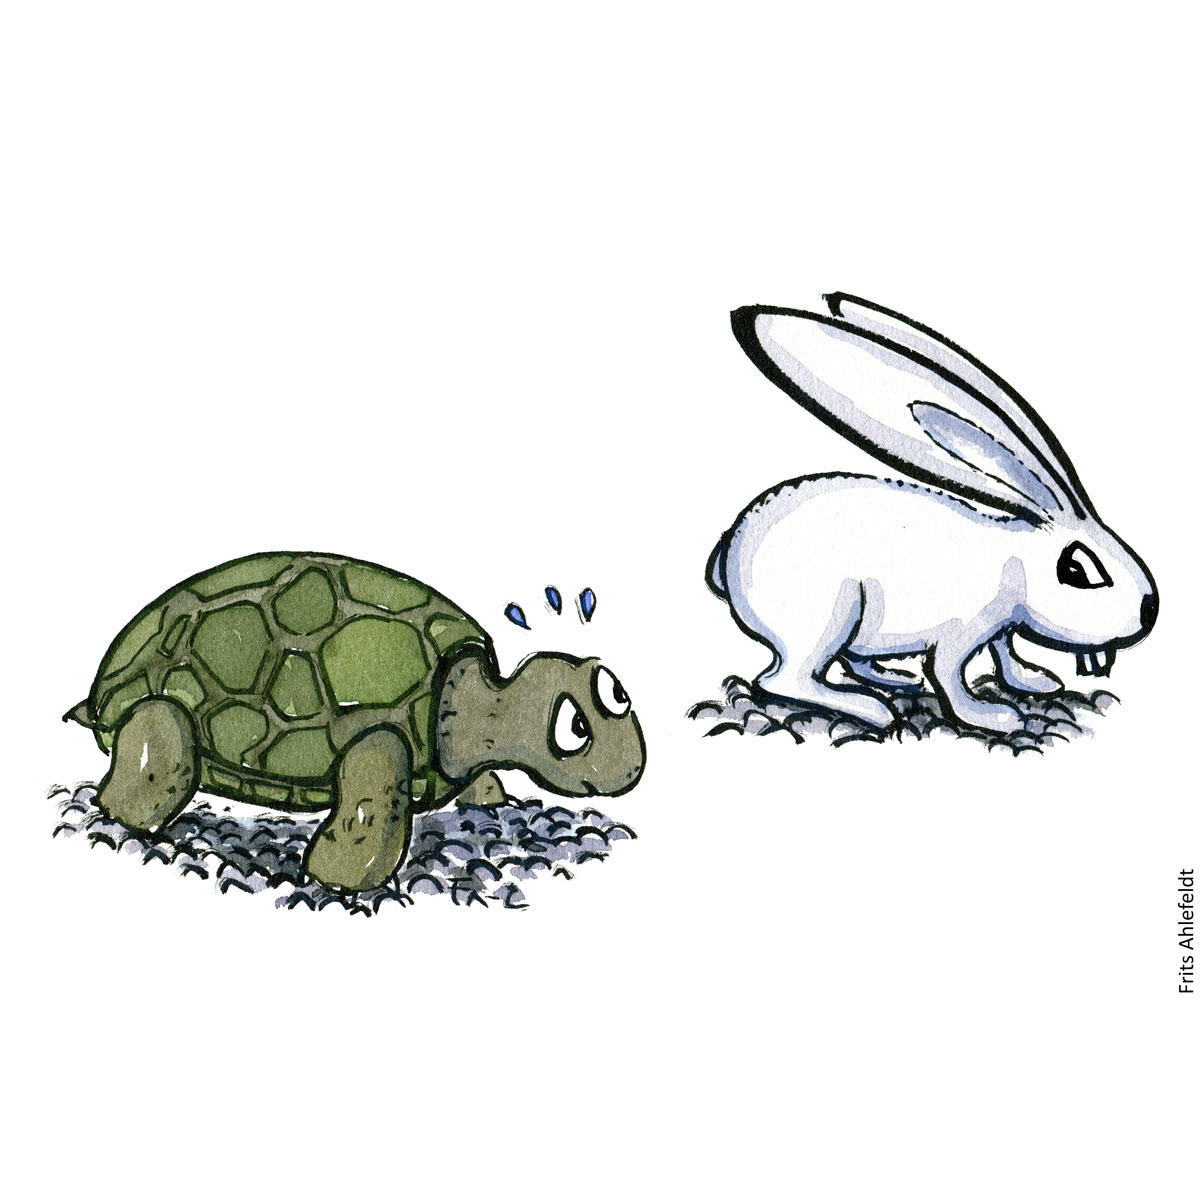 Drawing of a turtle racing a white rabbit illustration handmade by Frits Ahlefeldt